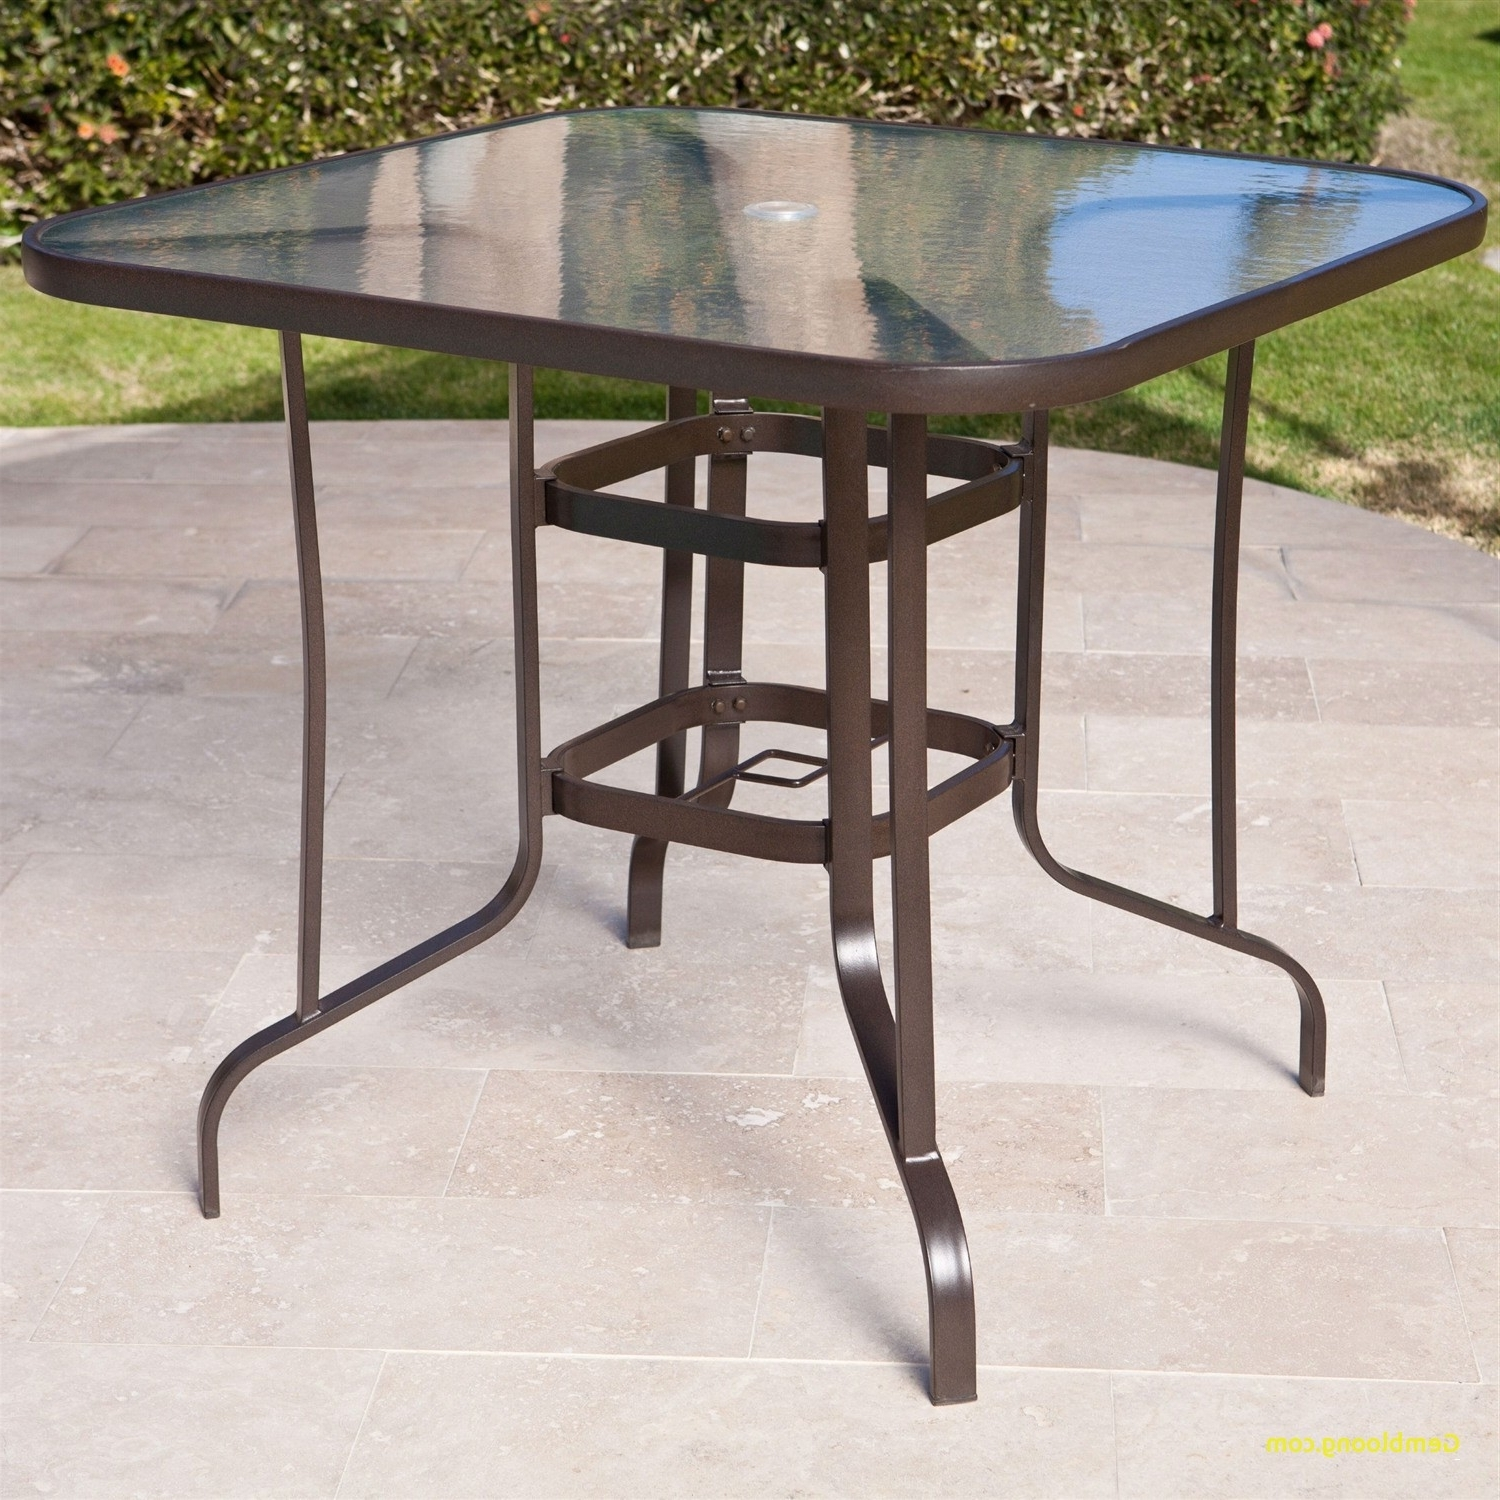 Widely Used Patio Table With Umbrella Hole – Pelikansurf Intended For Small Patio Tables With Umbrellas Hole (View 8 of 20)